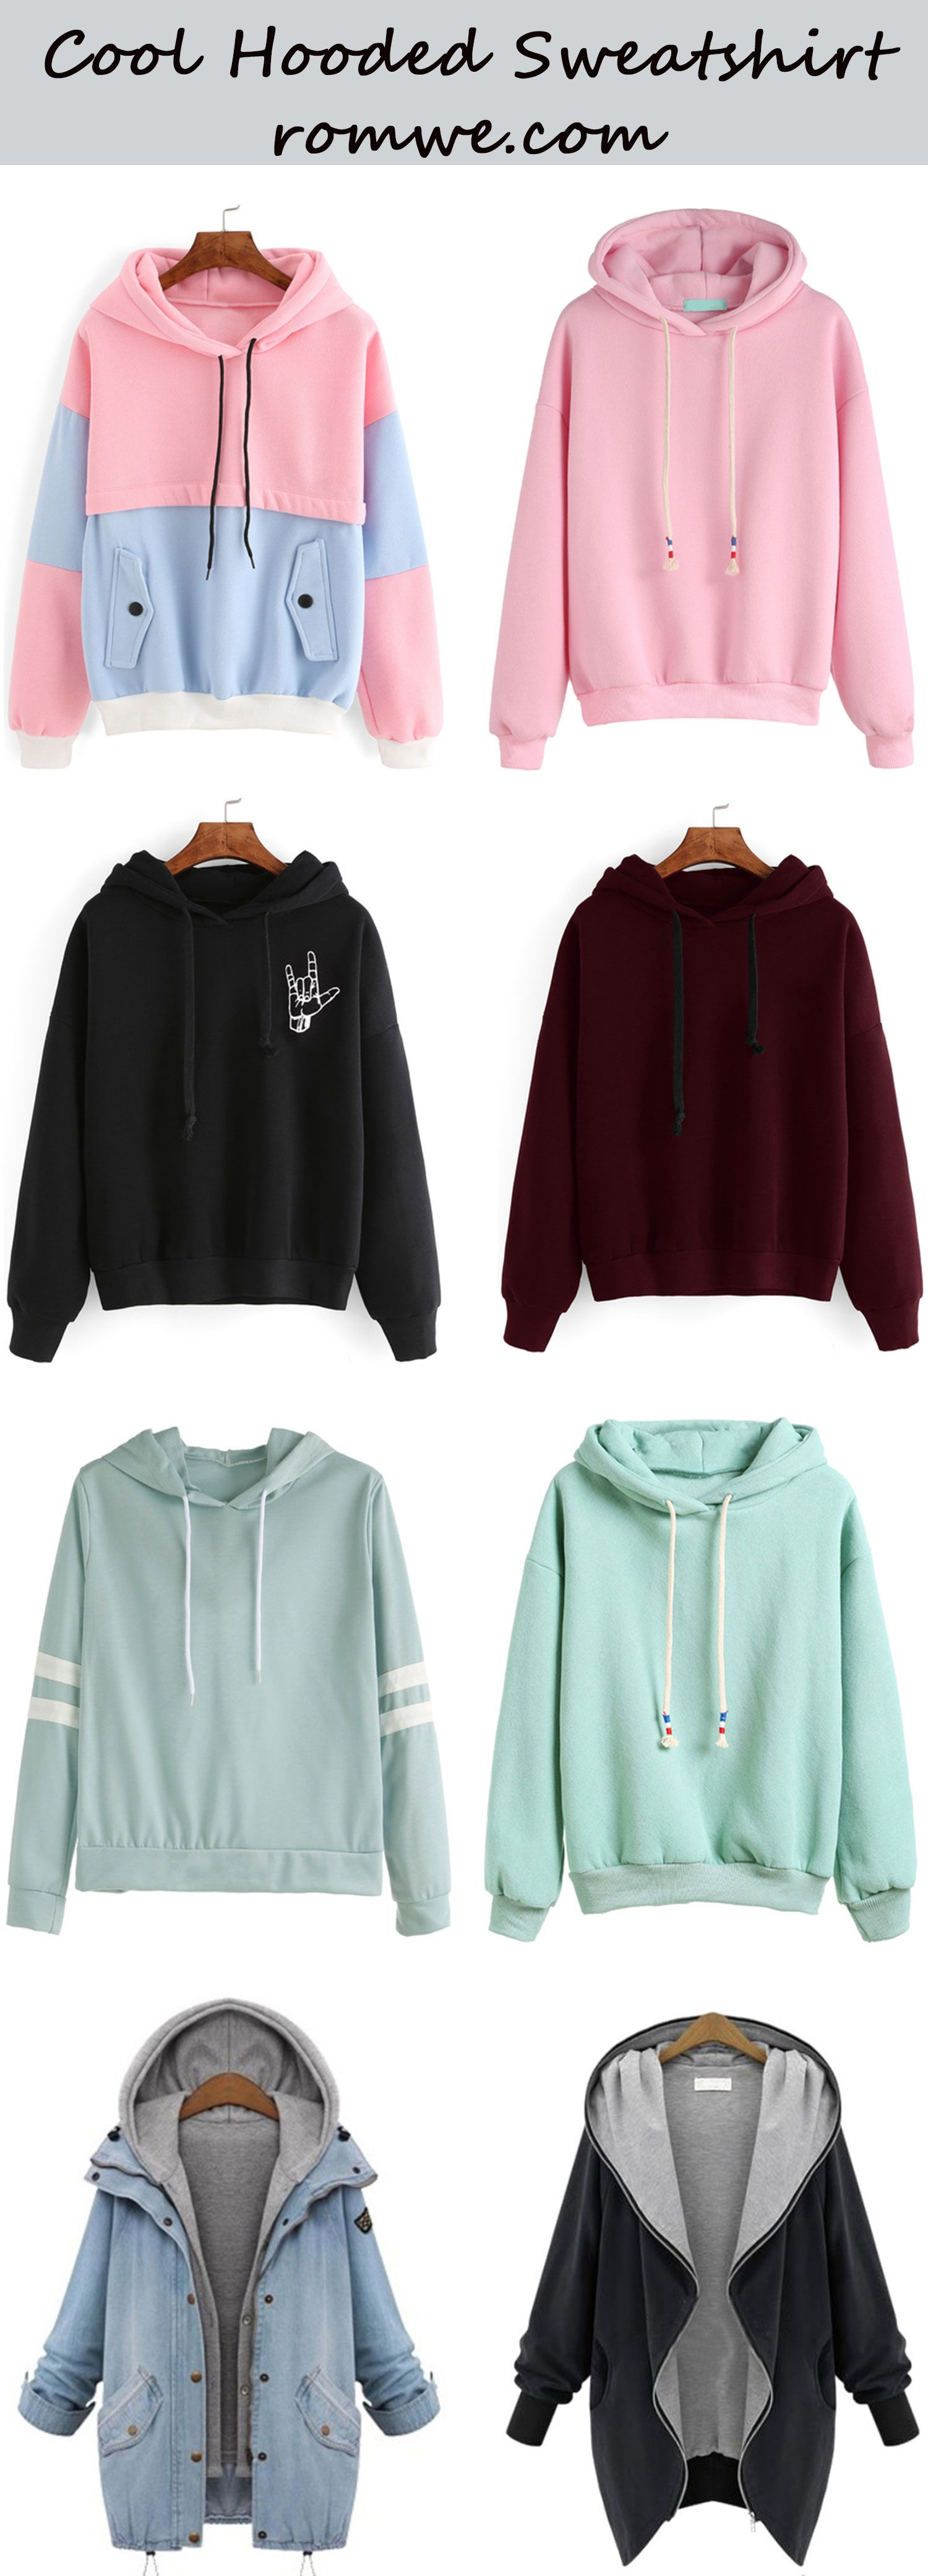 cool hooded sweatshirts from f pinterest kleidung mode f r teenager und. Black Bedroom Furniture Sets. Home Design Ideas